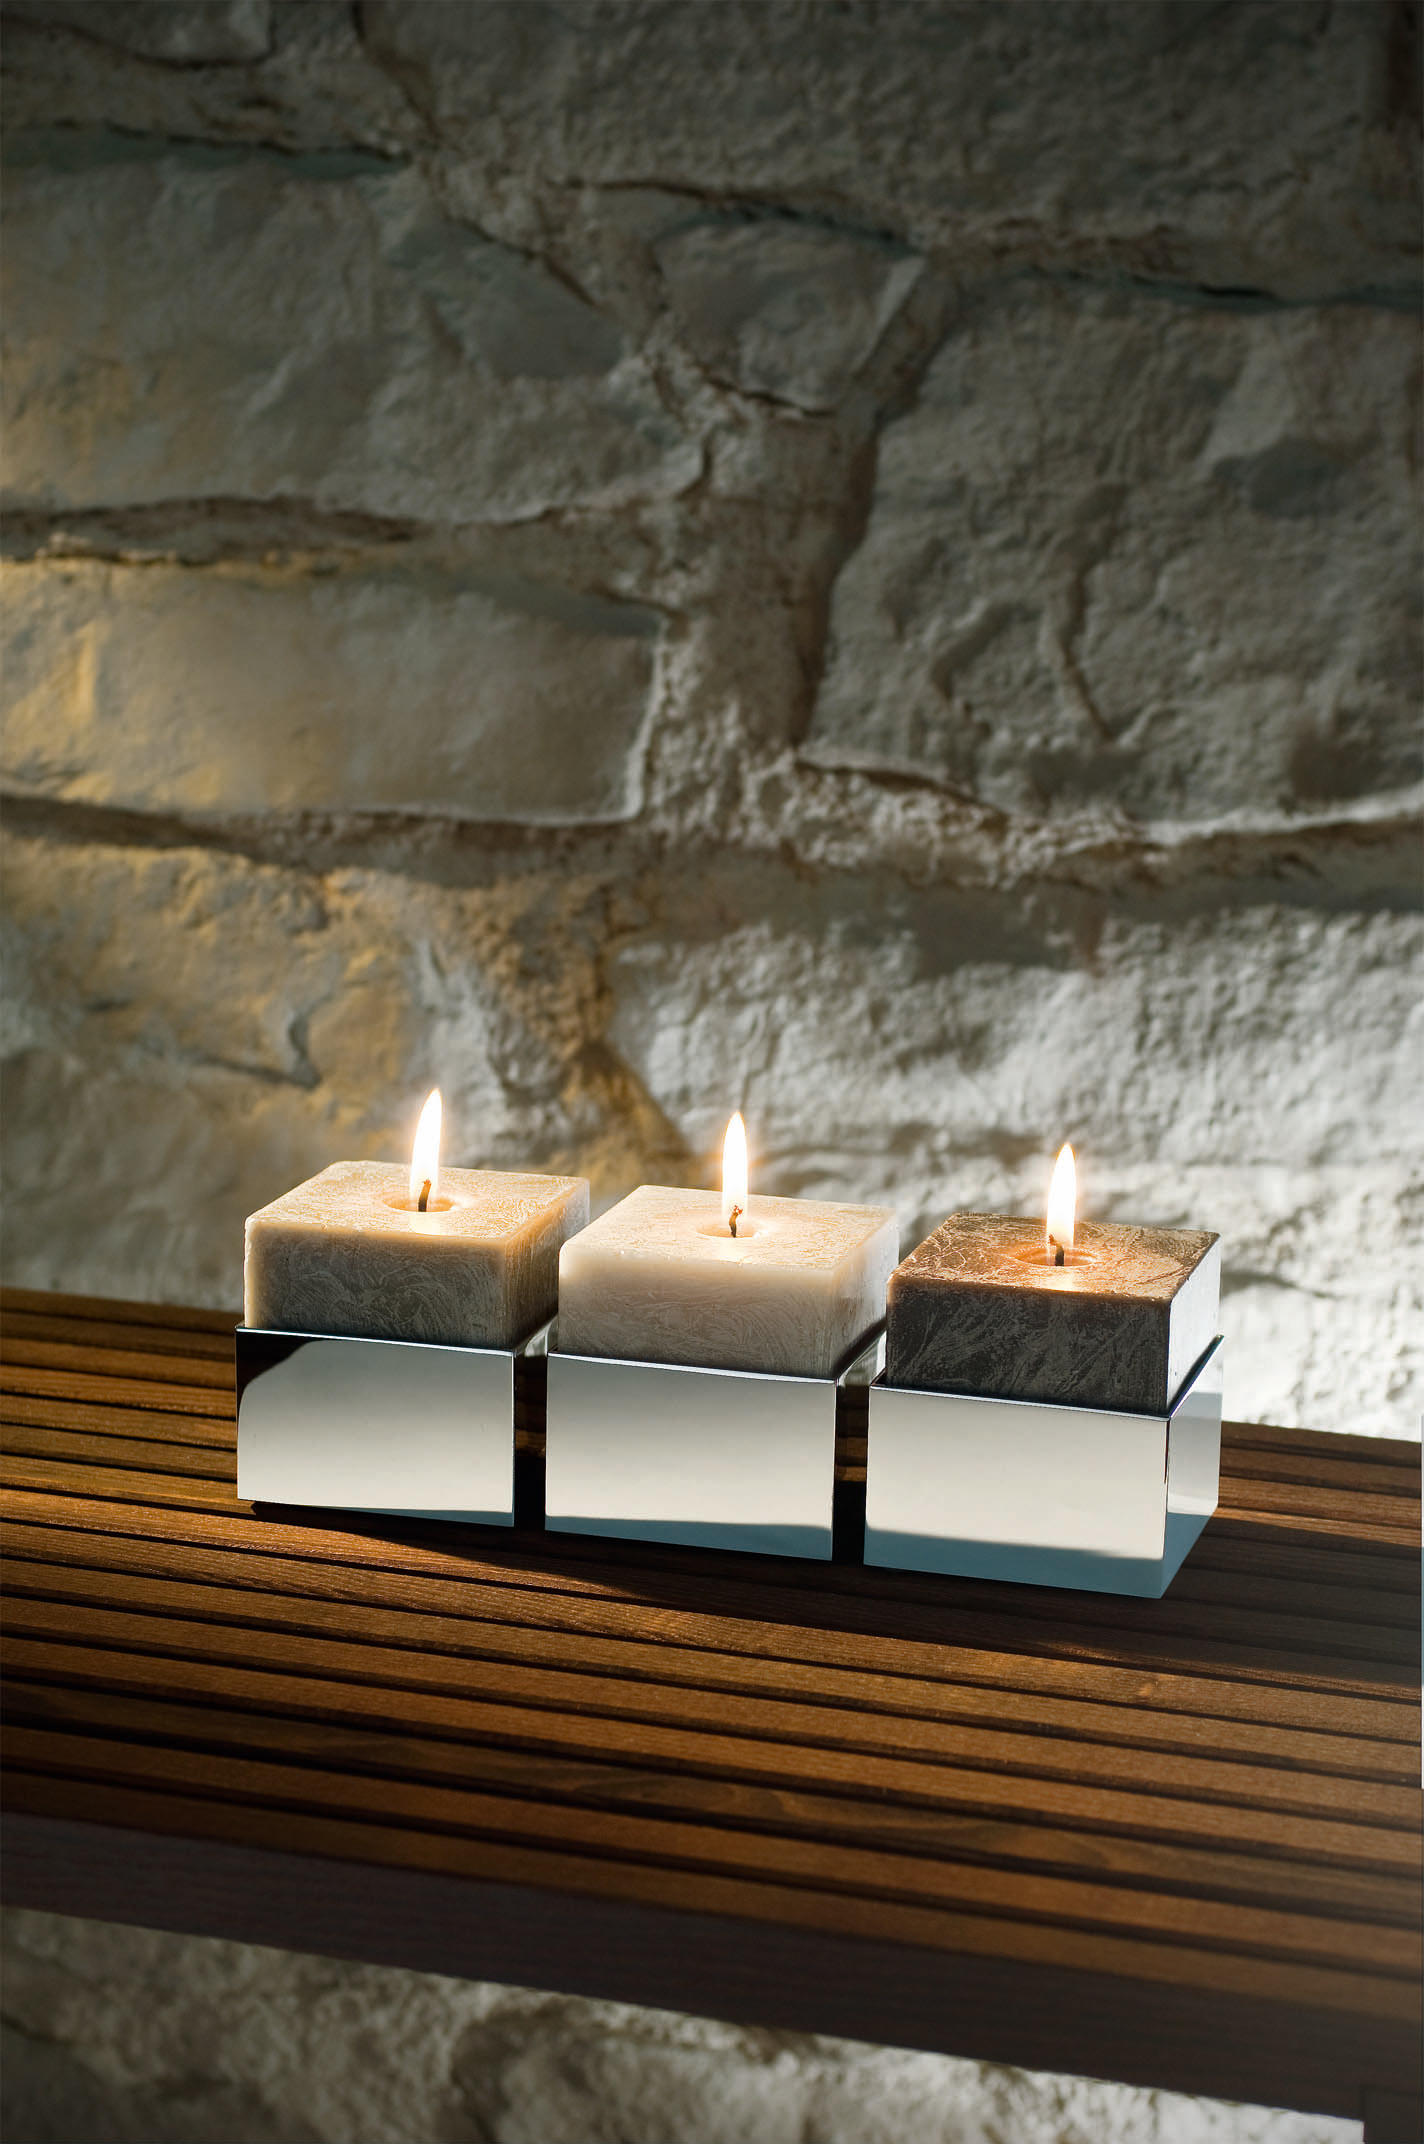 brick bk knh candlesticks candleholder from decor walther architonic. Black Bedroom Furniture Sets. Home Design Ideas